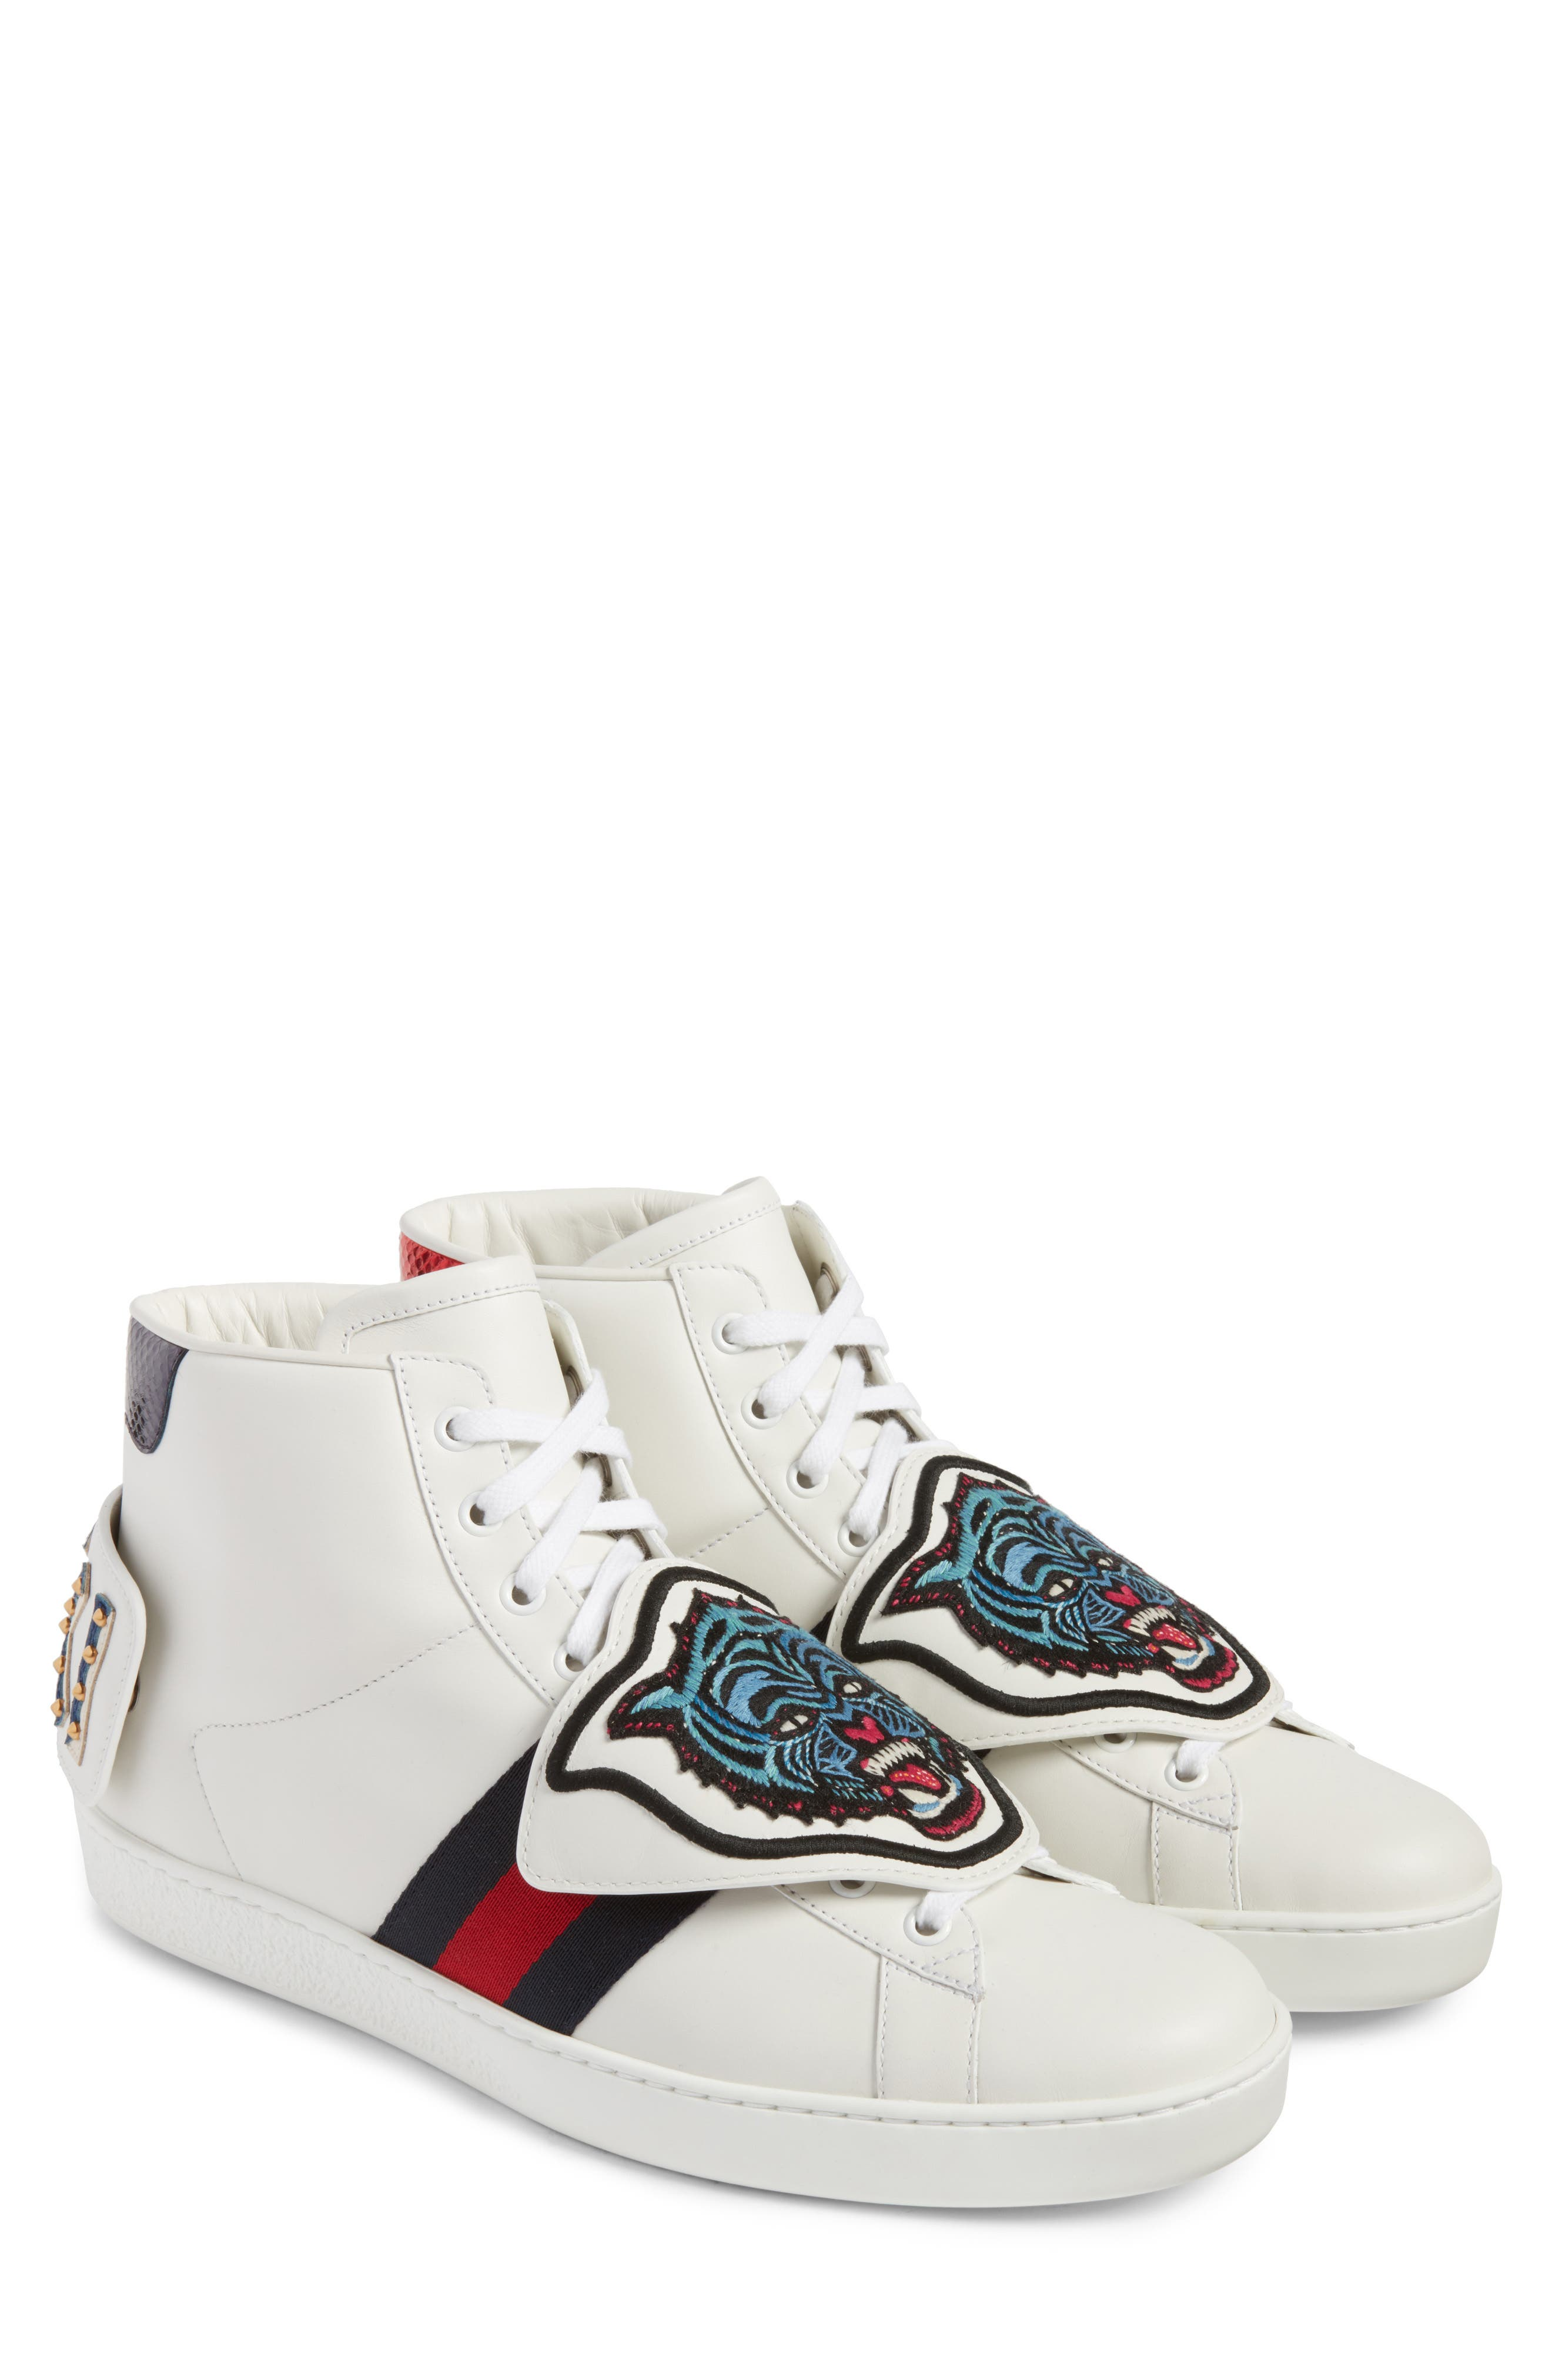 New Ace Jaguar Embroidered Patch High Top Sneaker,                         Main,                         color, Bianco